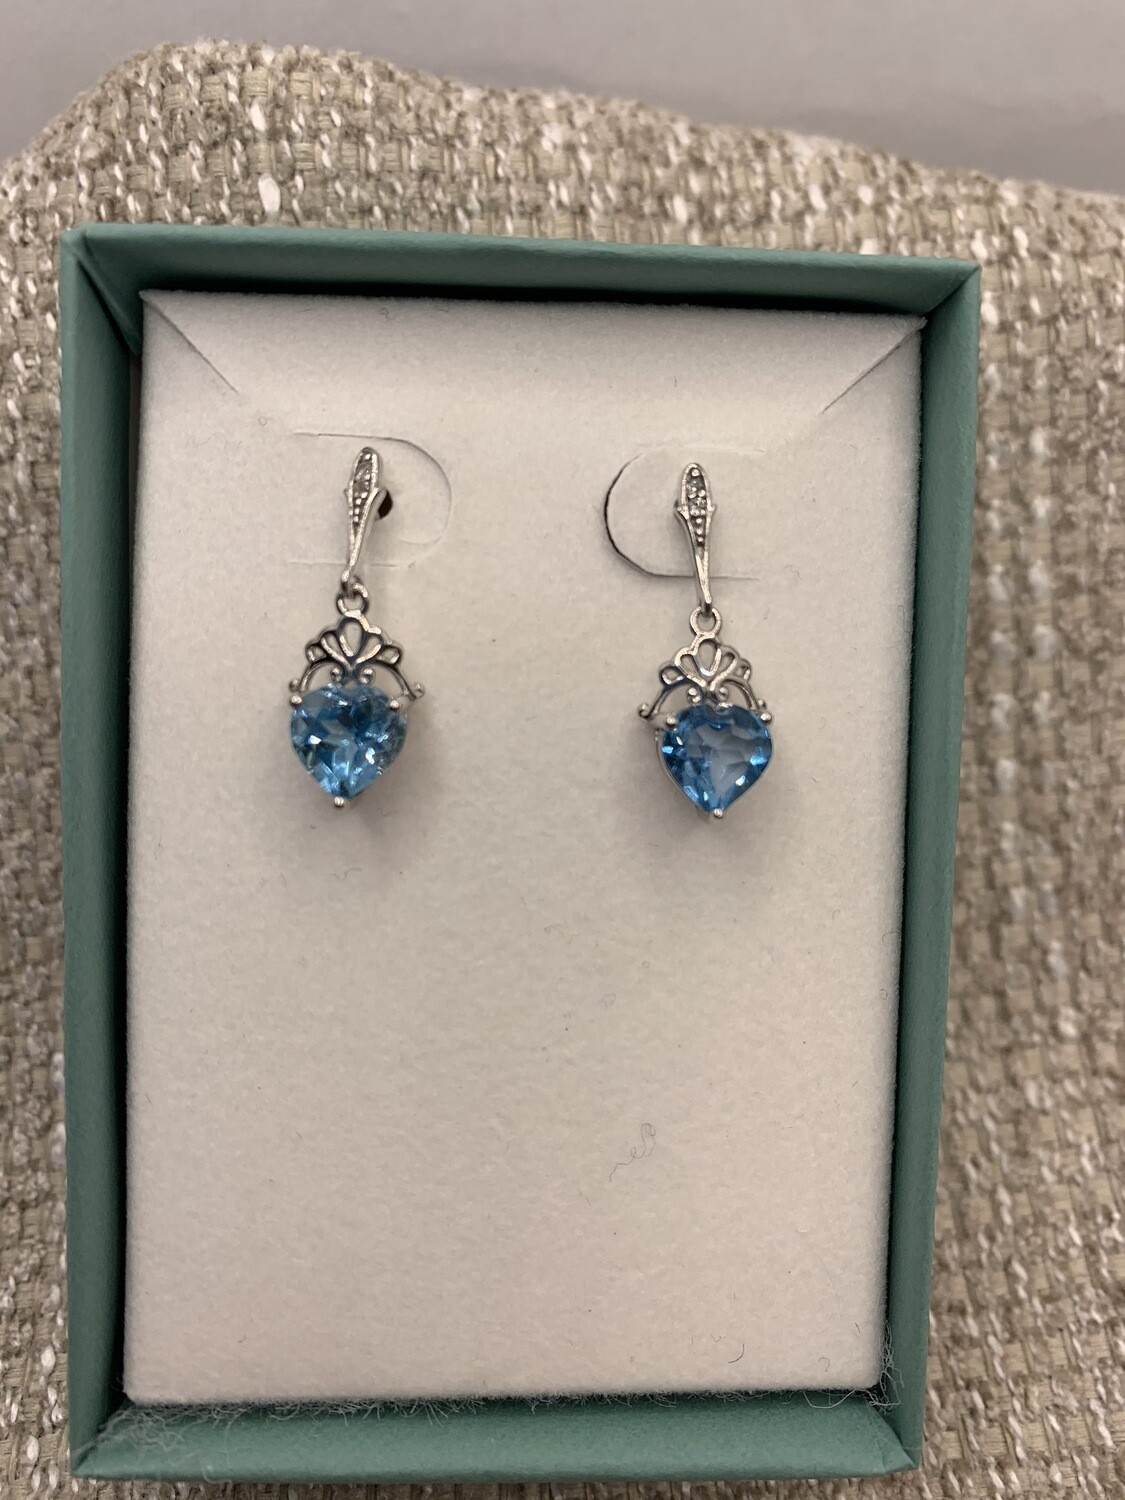 Light Blue Synthetic Birthstone Drop Earrings With Diamond Accents